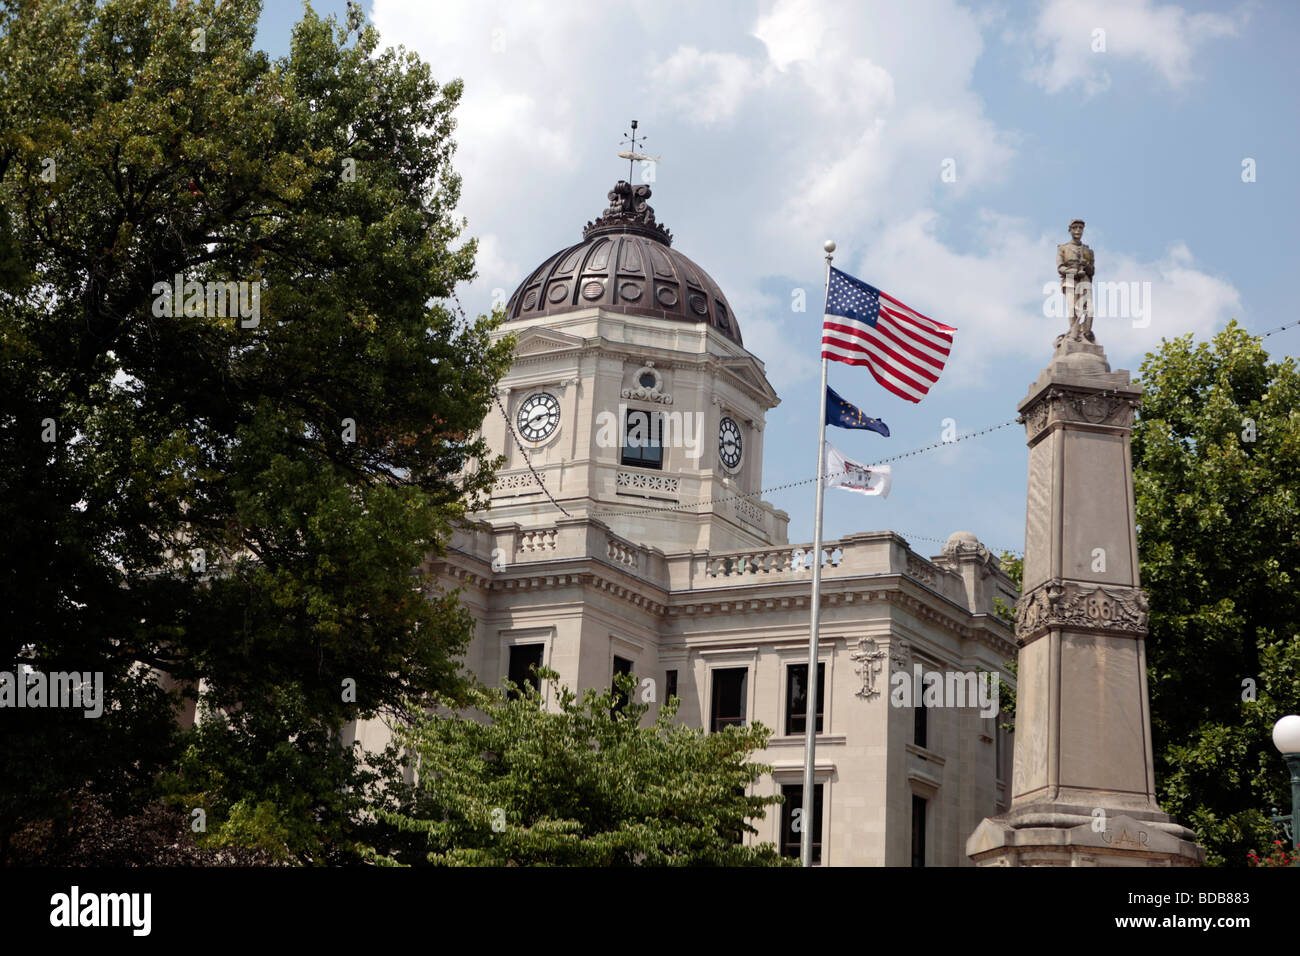 The Monroe County Courthouse in Bloomington, Indiana has a